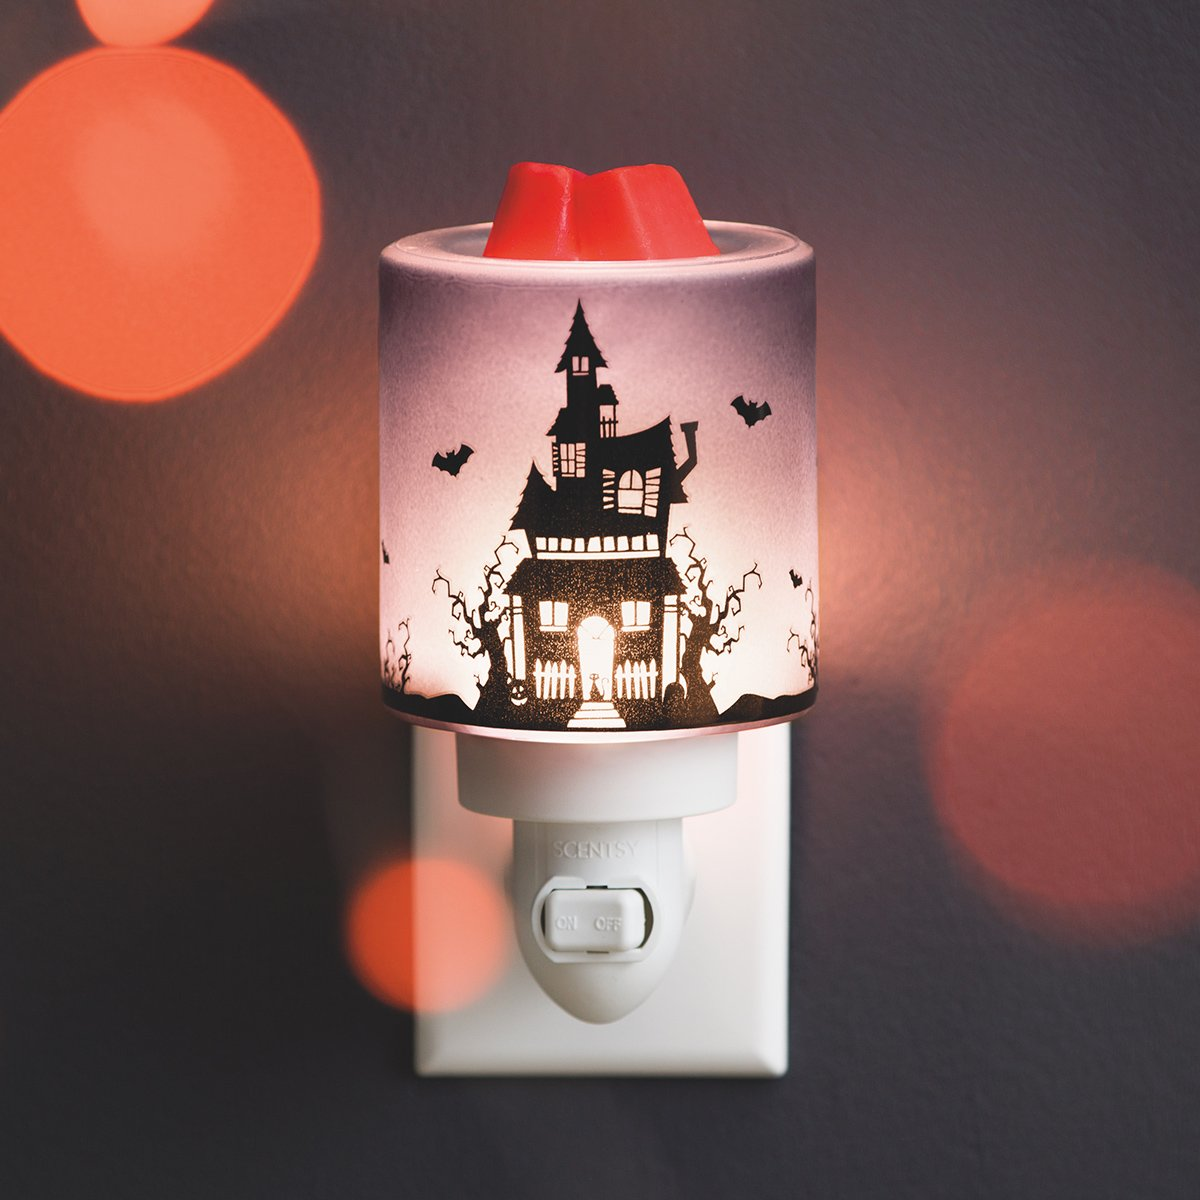 Scentsy Harvest Collection 2018 The Scents Of Halloween